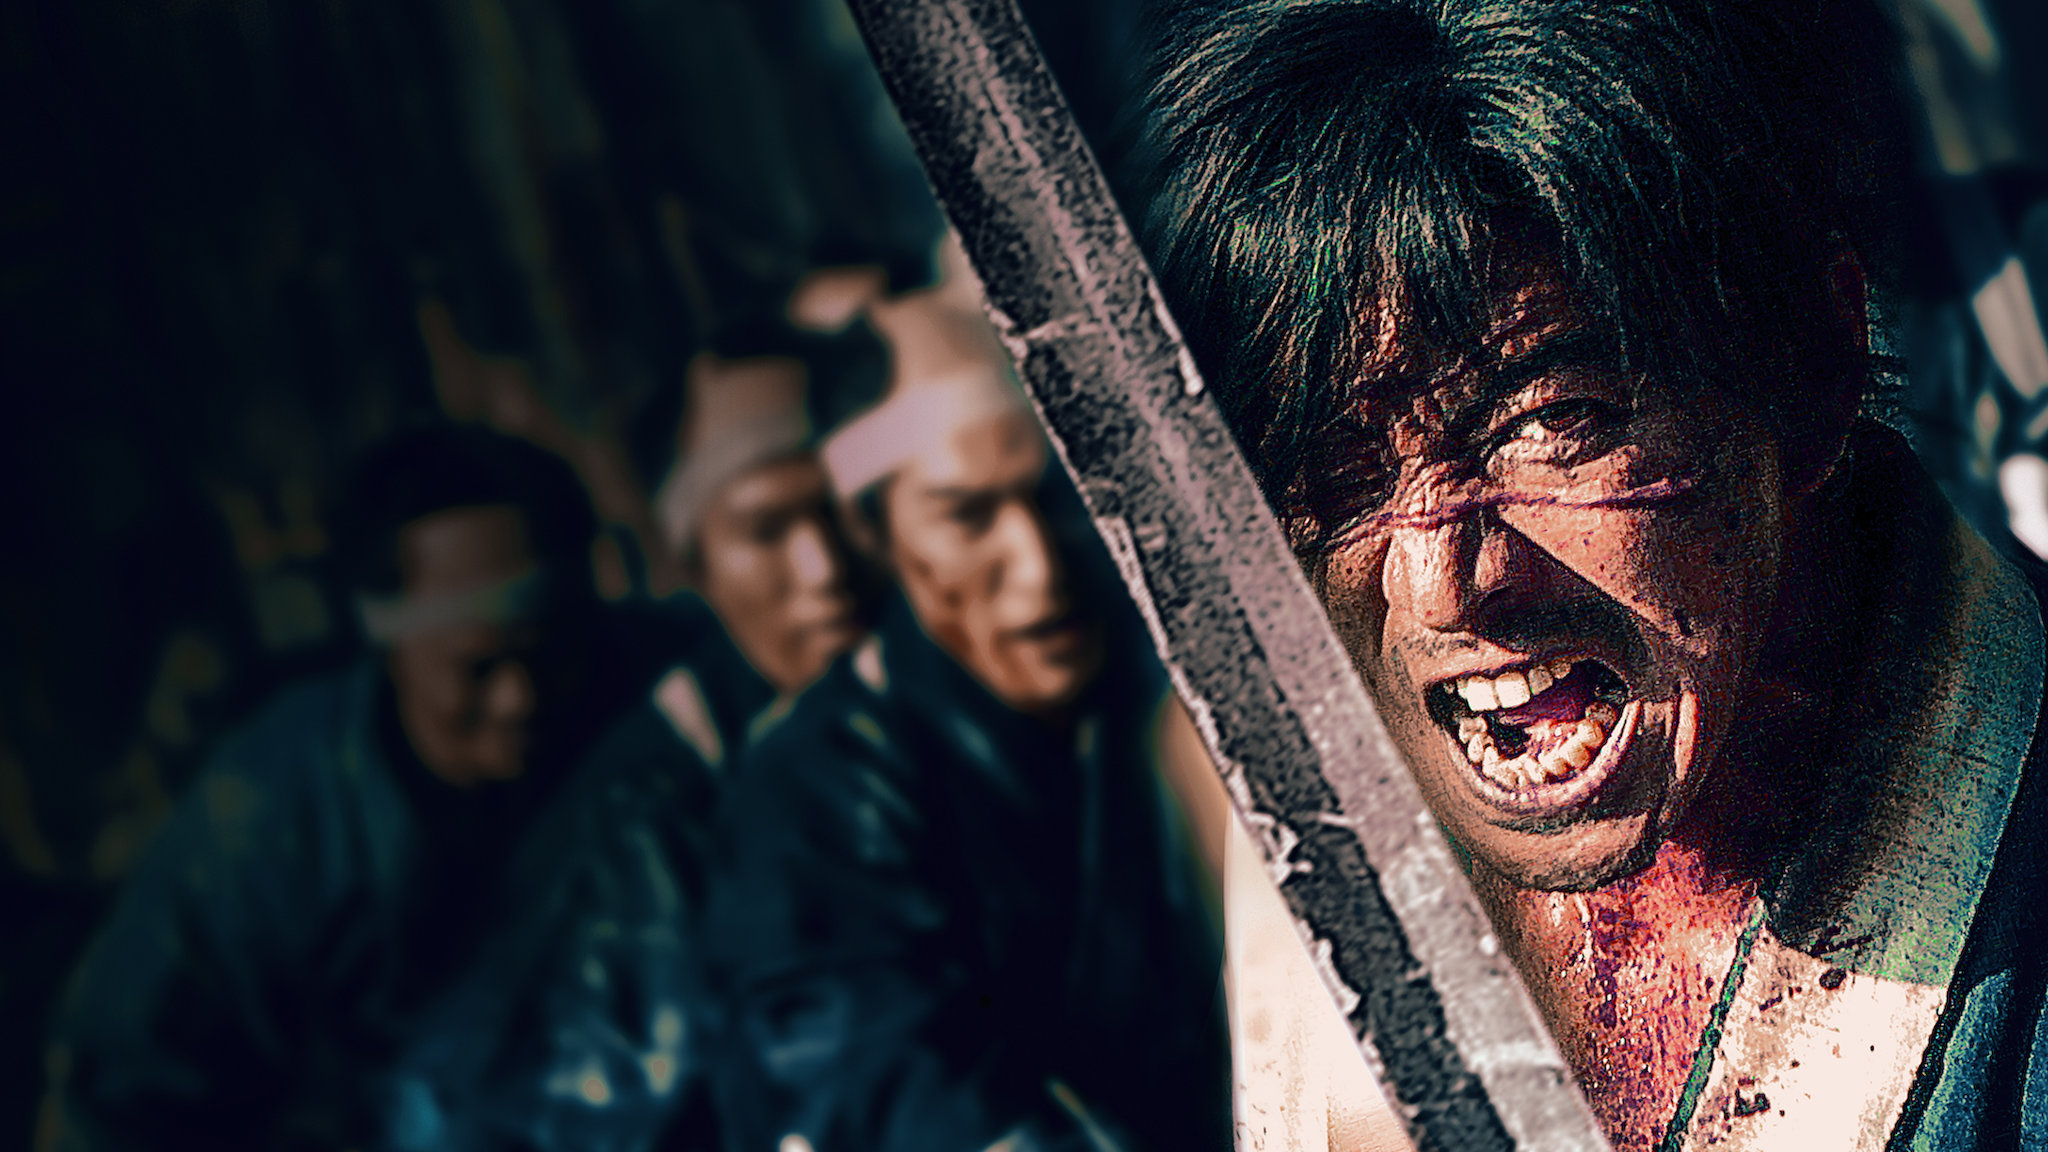 Films adapted from manga - Blade of the Immortal